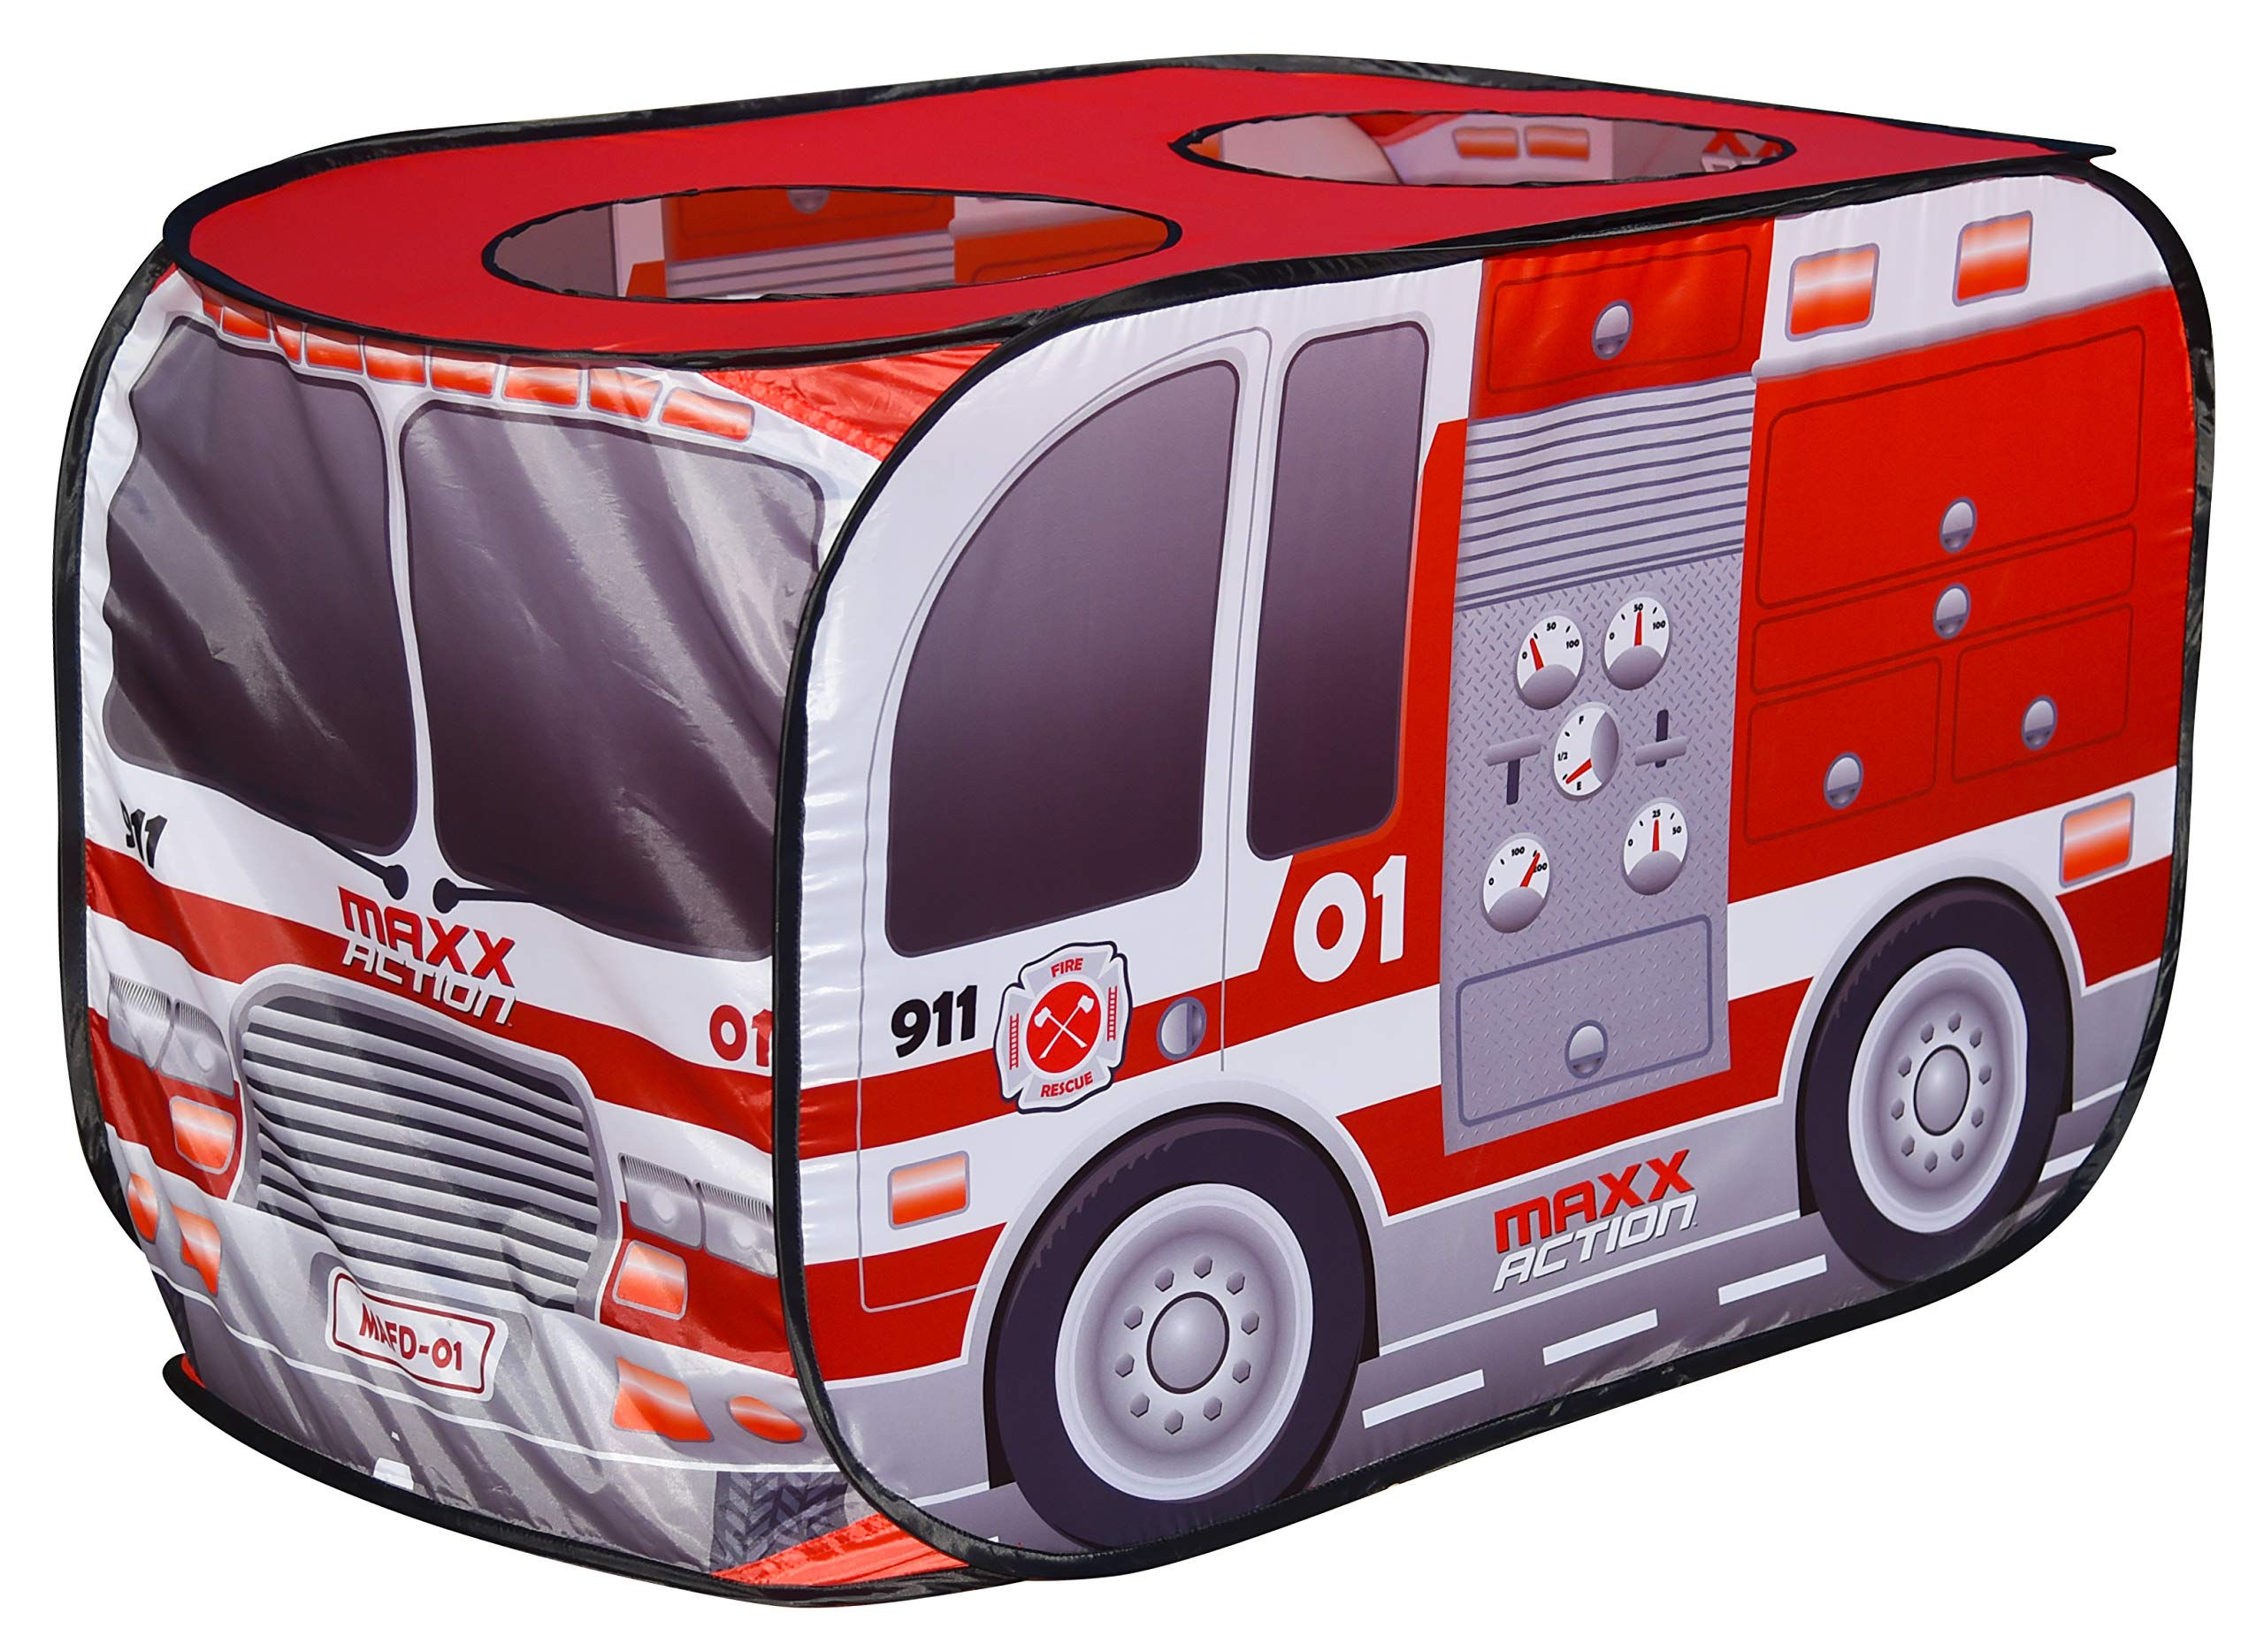 Sunny Days Entertainment Pop Up Fire Truck – Indoor Playhouse for Kids   Red Engine Toy Gift for Boys and Girls